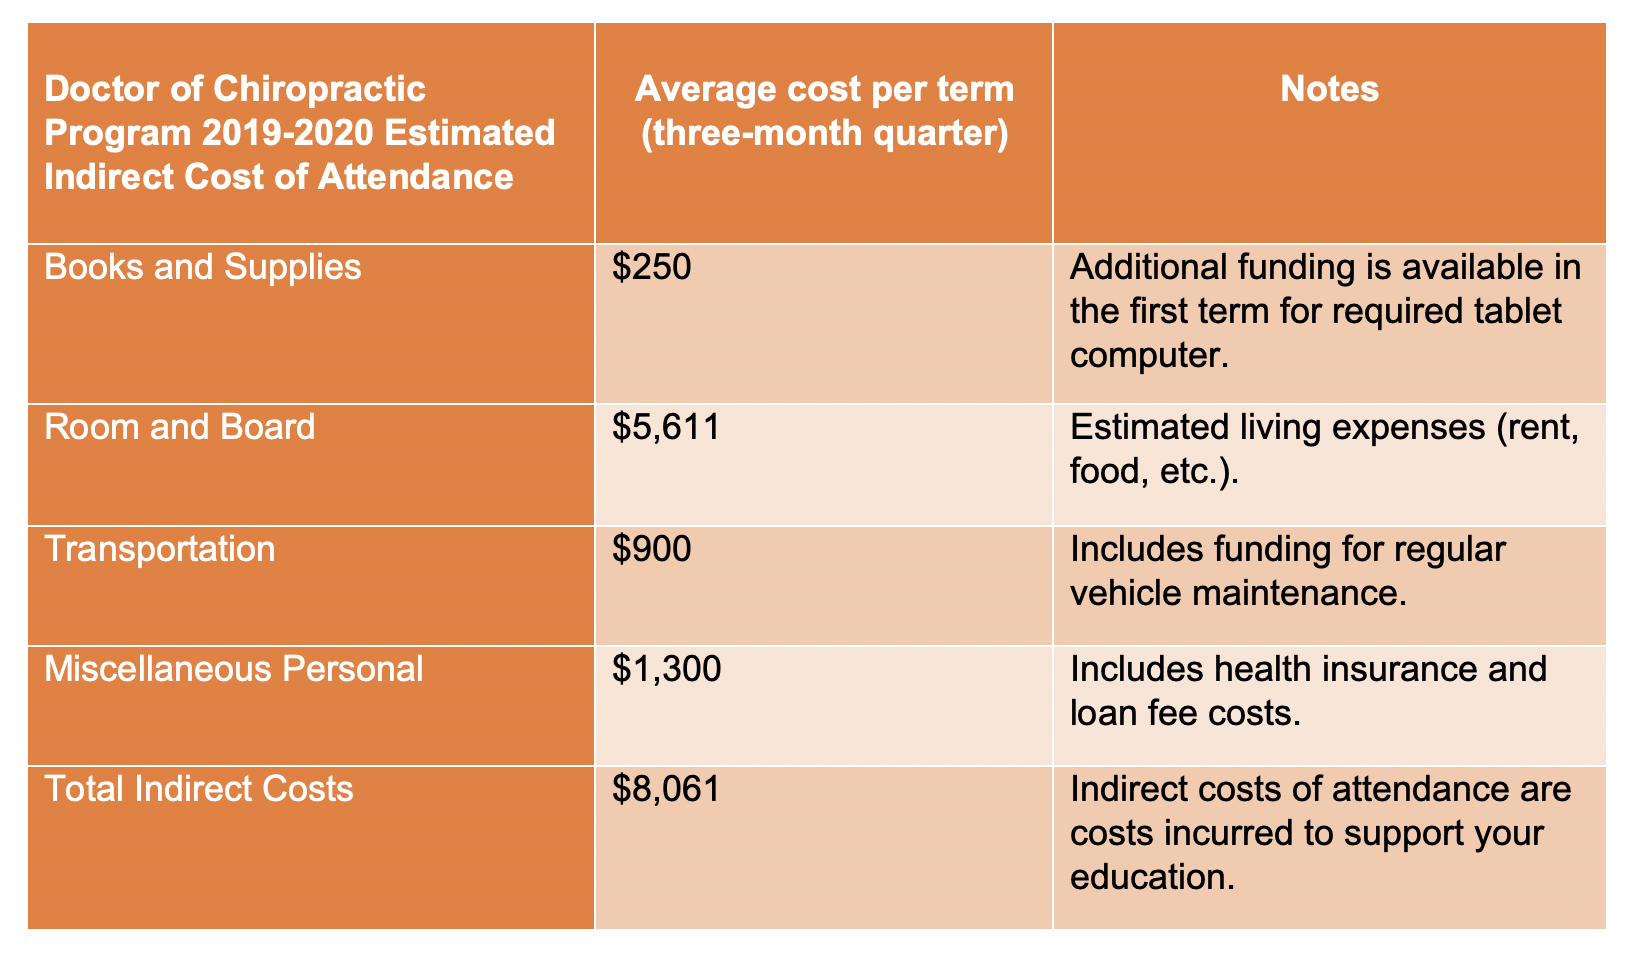 Costs incurred for living and transportation as well as books and supplies to support your education are indirect costs not charged by the university.